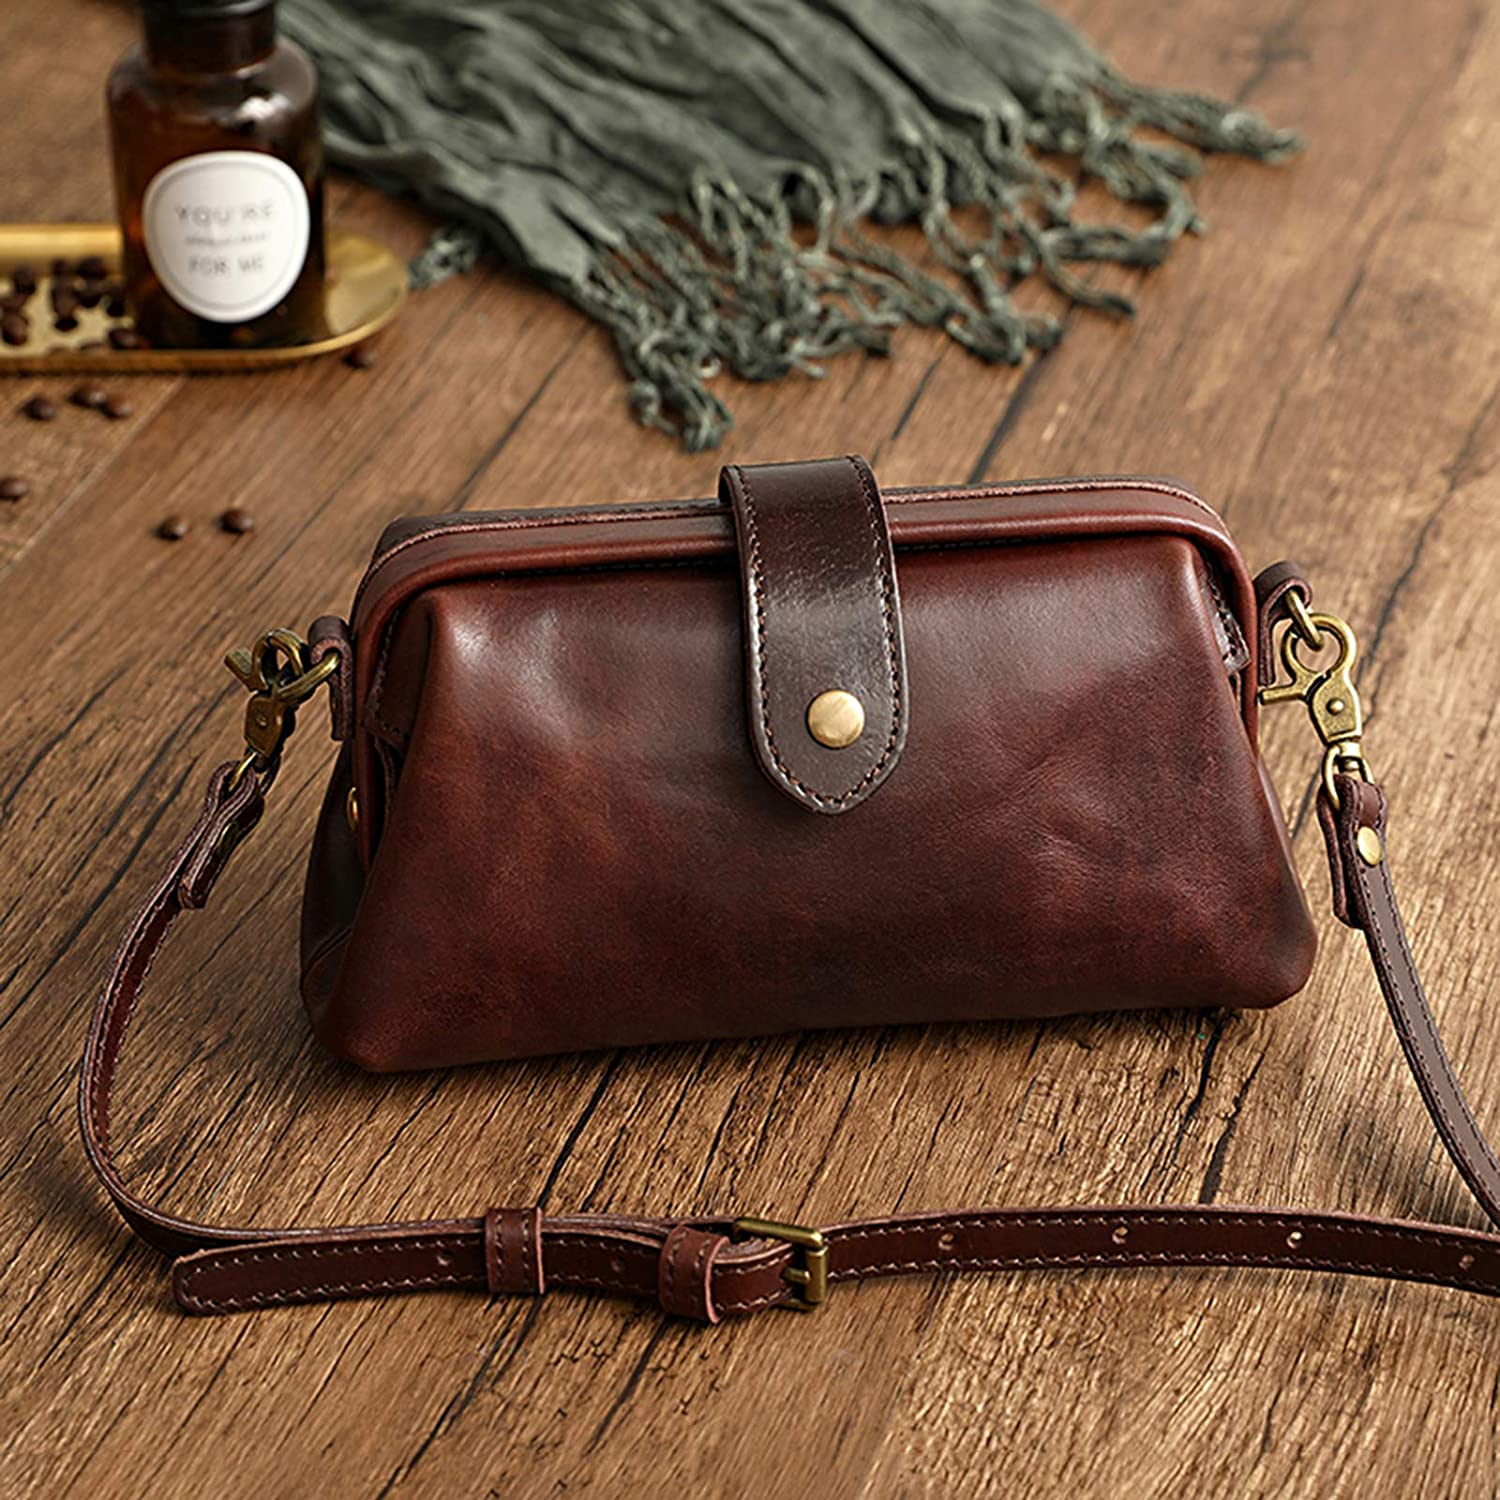 Premium Leather Retro Handmade Bag Max 72% OFF Crossboy Small Women for 2021 spring and summer new